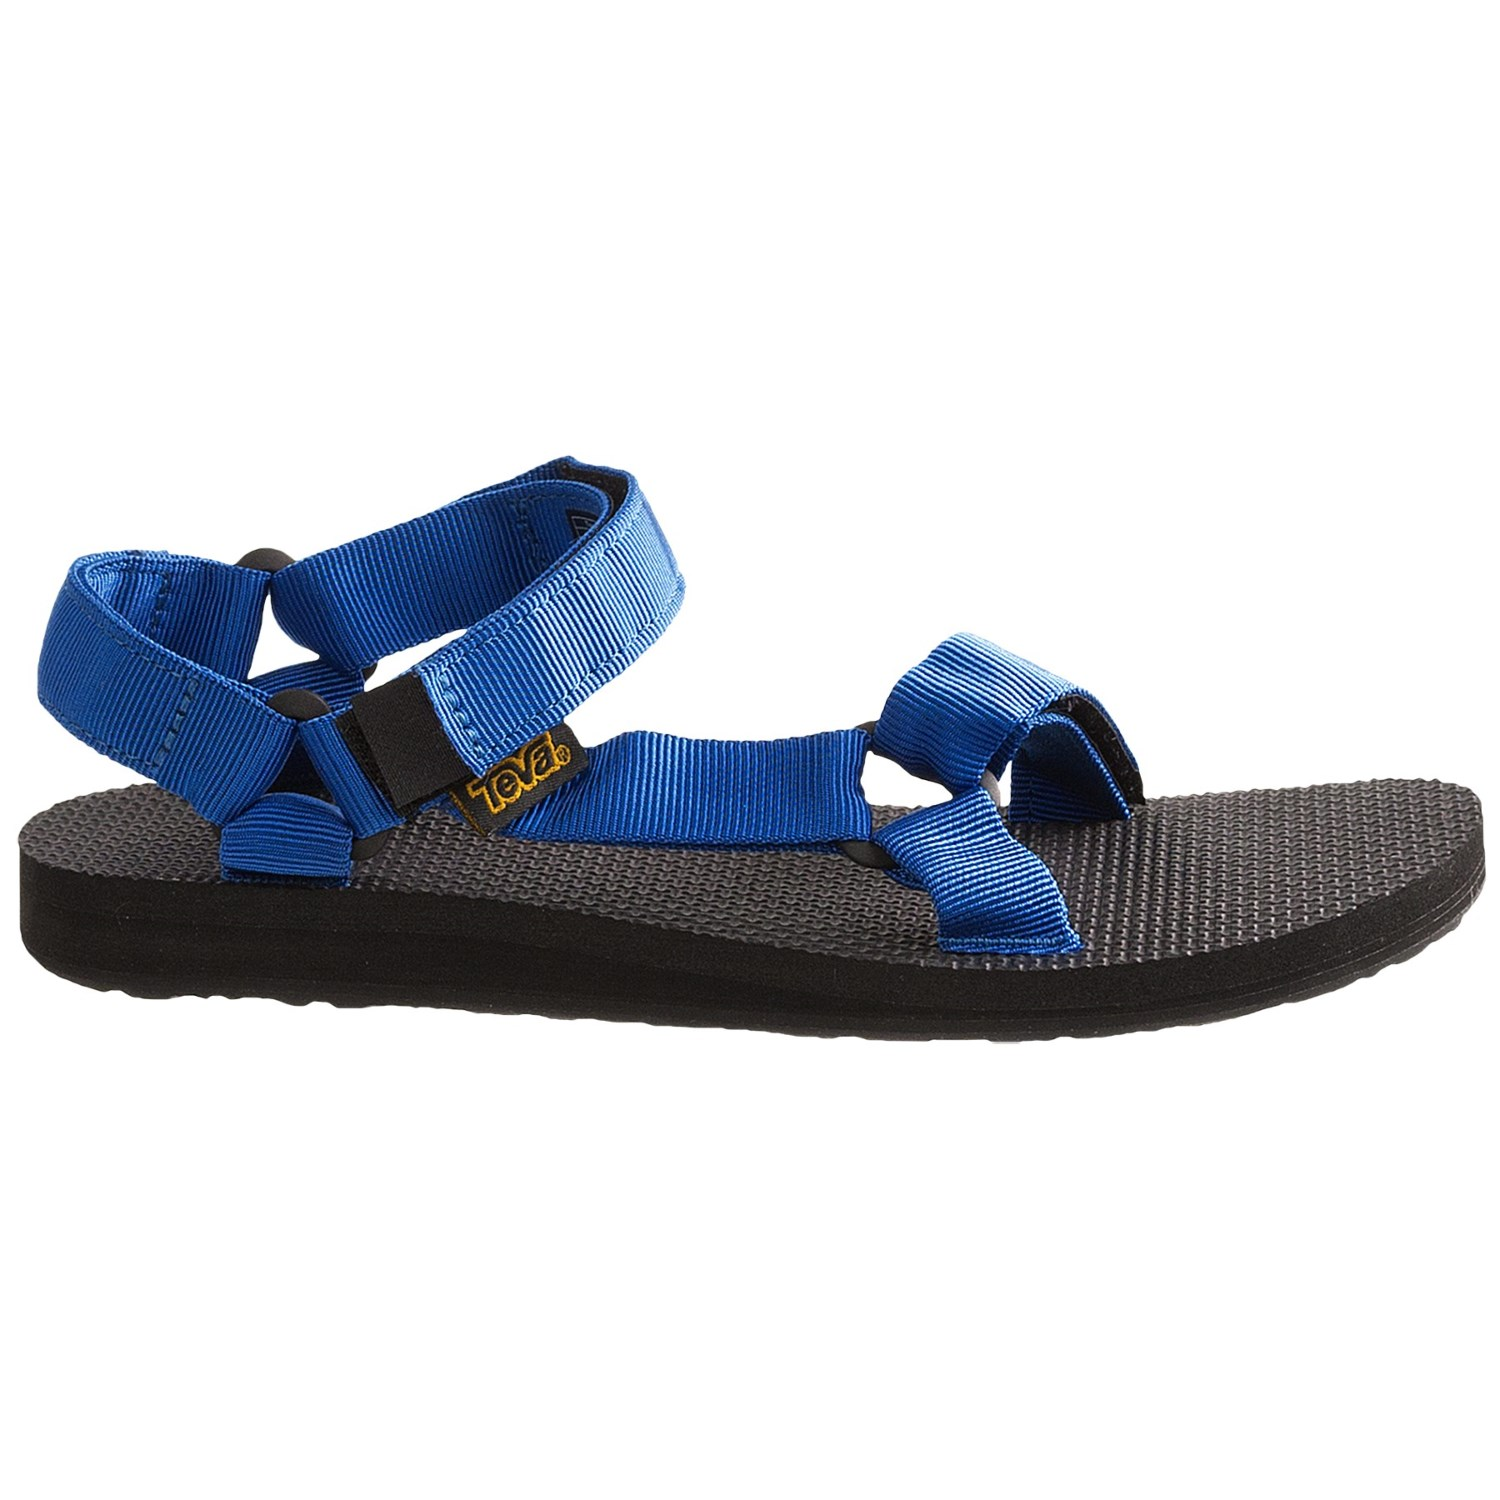 teva original universal sport sandals for women   save 50